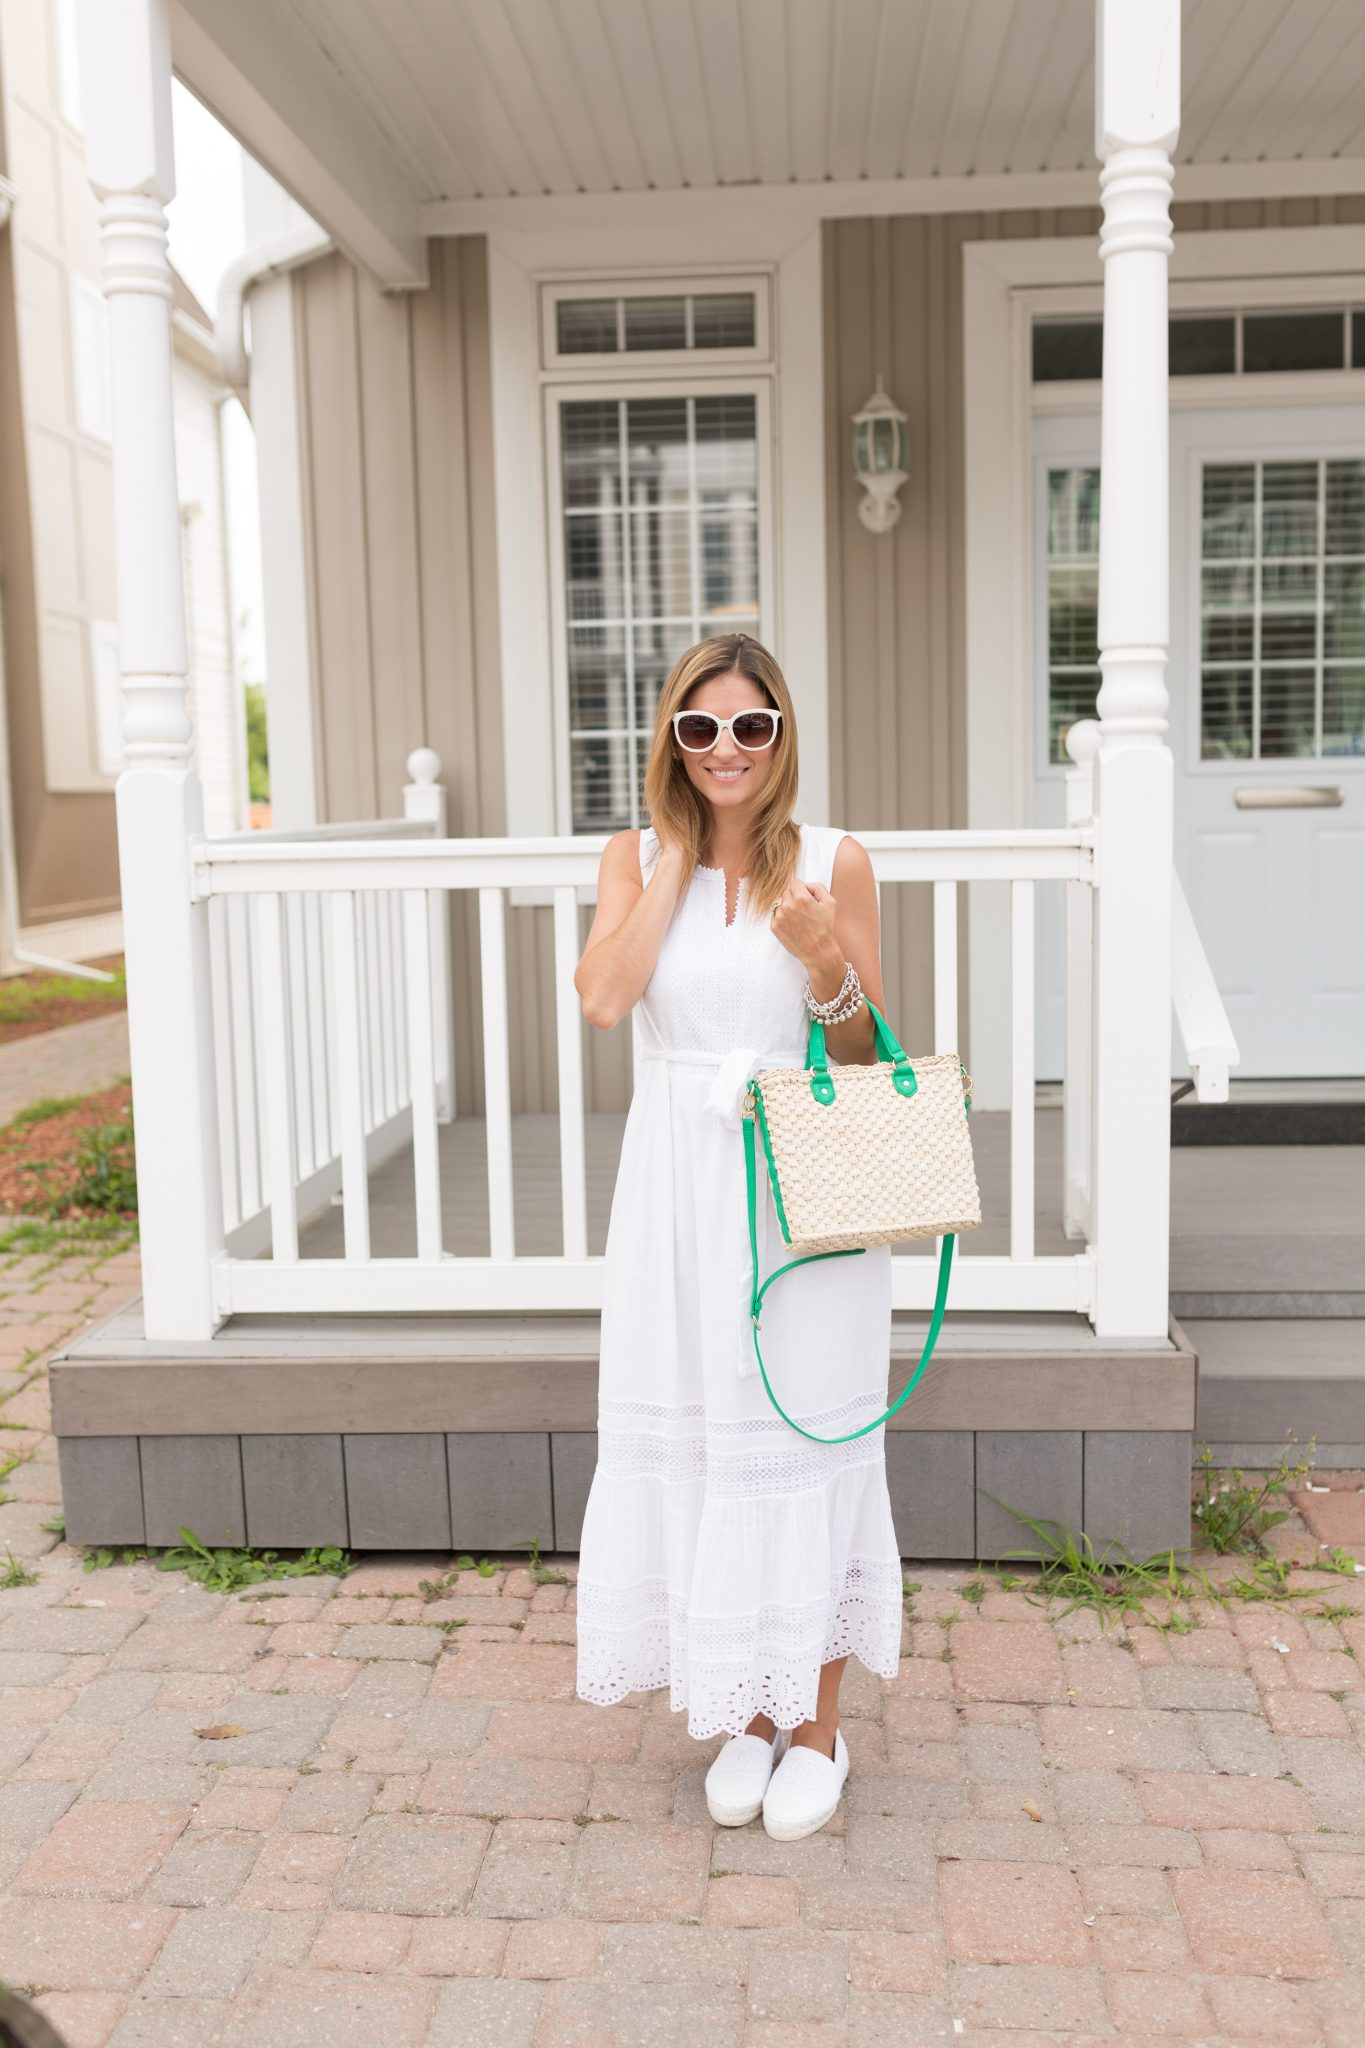 TalbotsEmbroidered-Eyelet & Lace Maxi Dress, wicker cross body bag, white chanel espadrilles, white cat-eye sunglasses sparkleshinylove